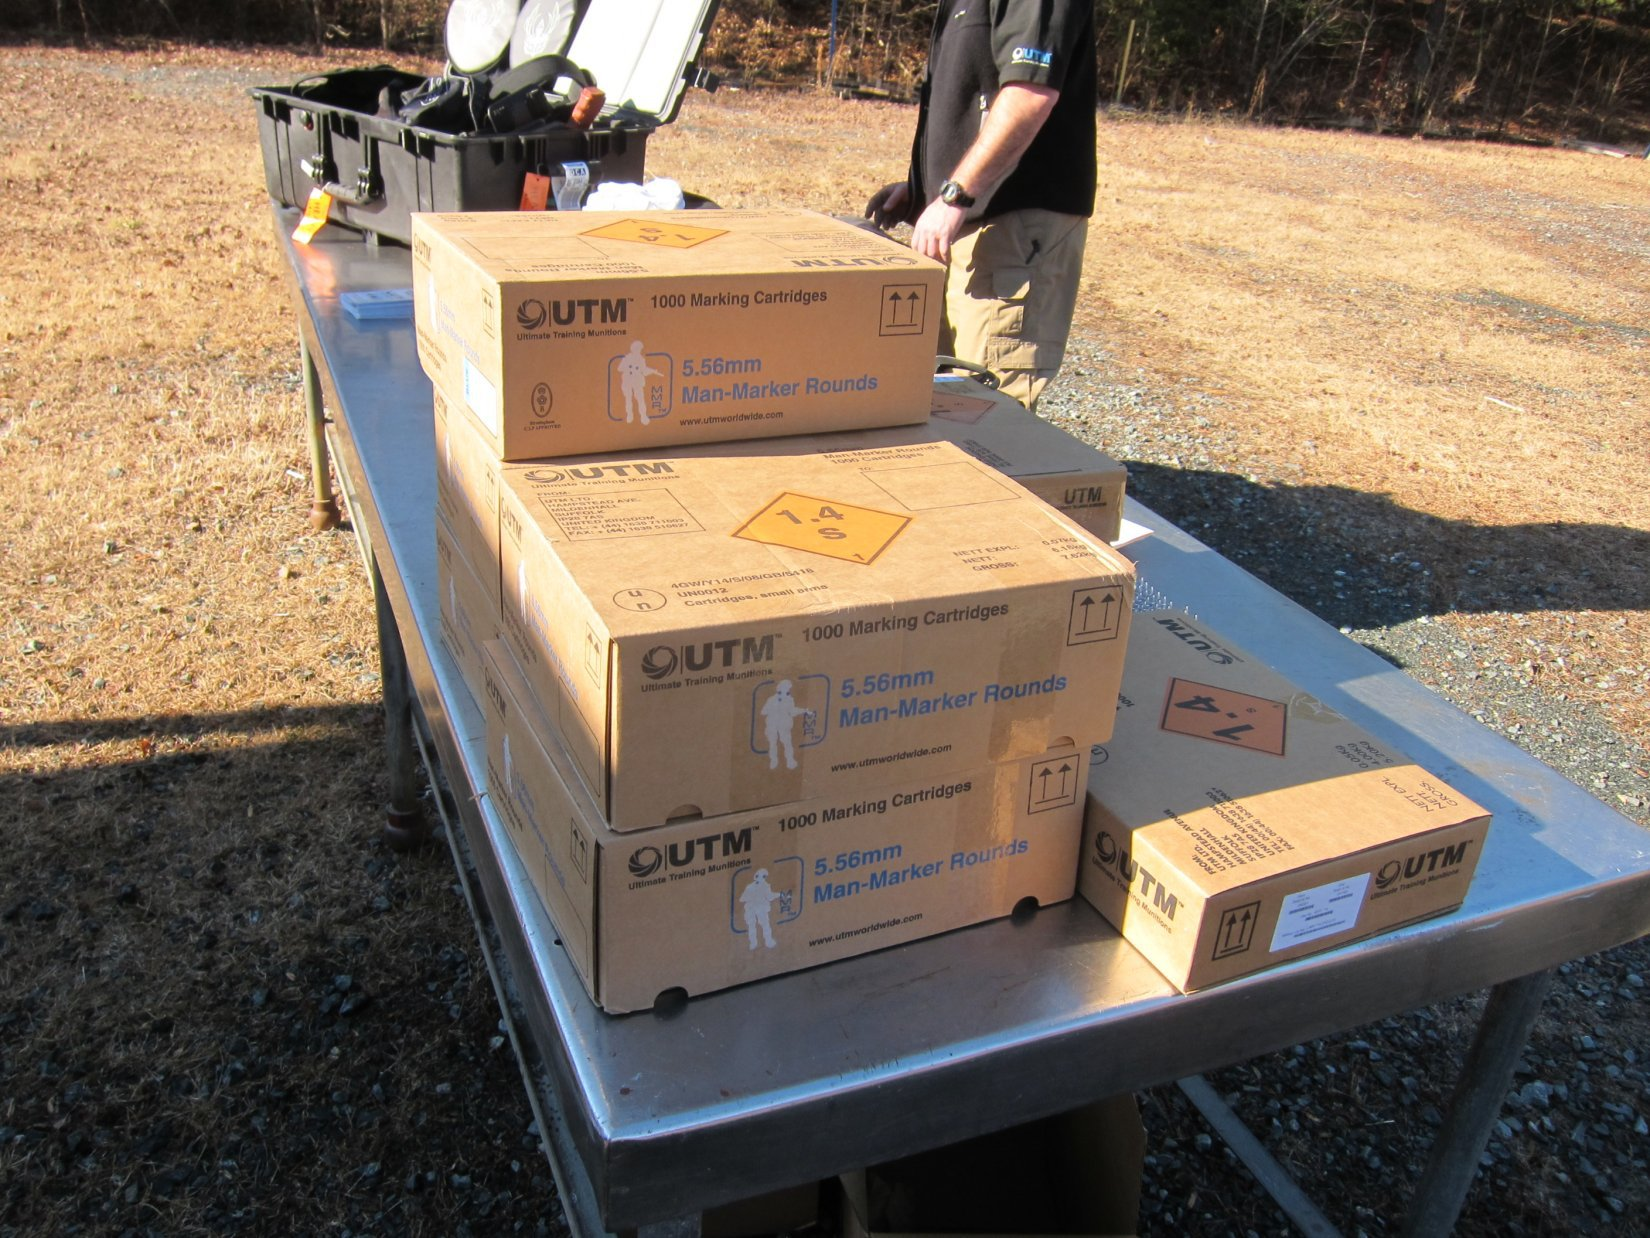 UTM Ammo Ultimate Training Munitions Ammunition Phoenix RBT Solutions Force On Force Training Ammo DefenseReview.com DR 2012 4 Ultimate Training Munitions (UTM) 5.56mm Man Marker Round (MMR) Force On Force Training Ammunition/Marking Cartridges in SureFire MAG5 60 HCM 60 Shot Quad Stack AR 15/M16 Rifle Magazine: Gunfighting Training Made Awesome!